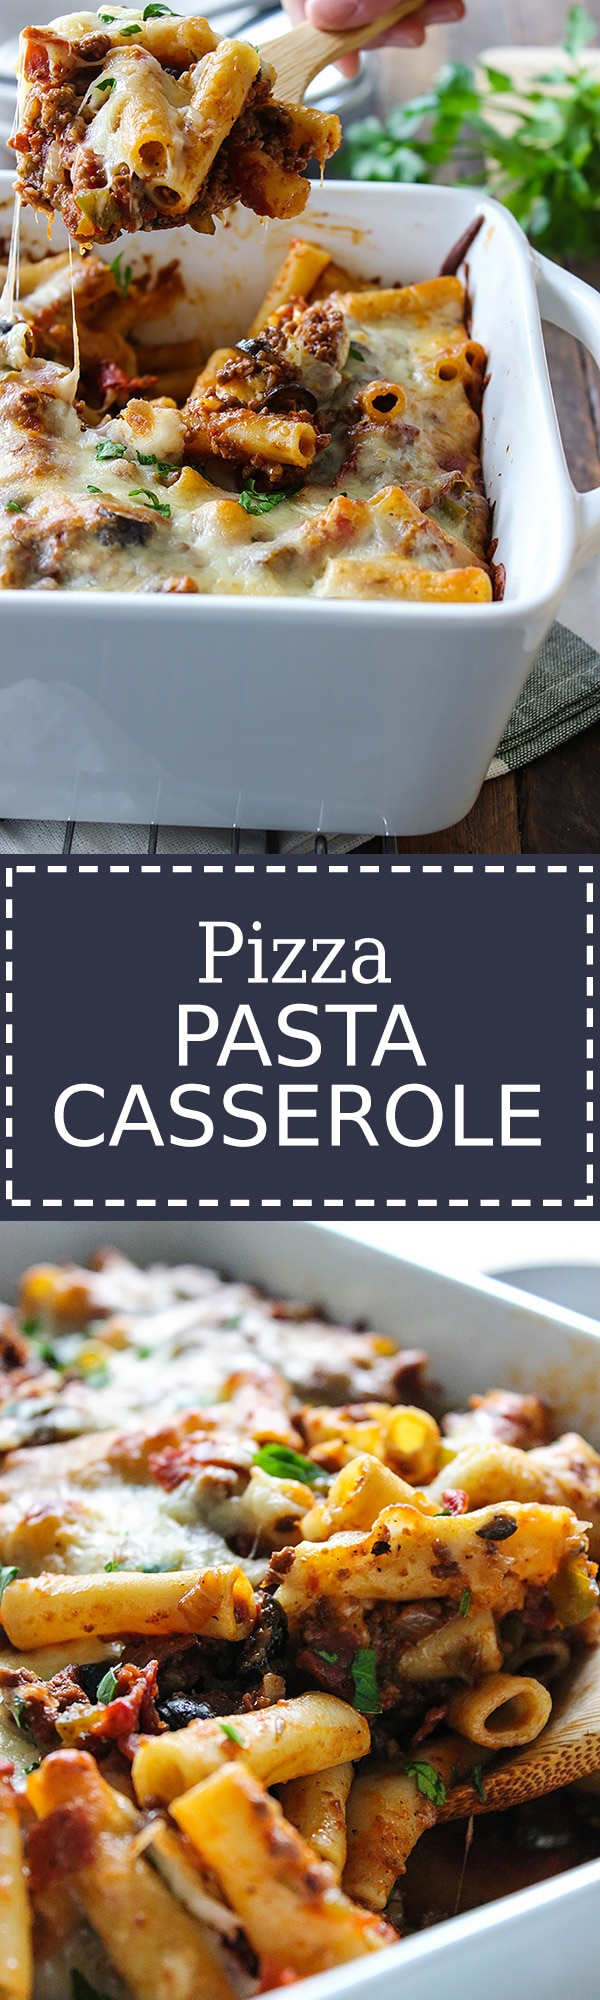 This pizza pasta casserole has all the flavors of pizza you love in casserole form. With tons of mozzarella cheese and lots of cheese strings!